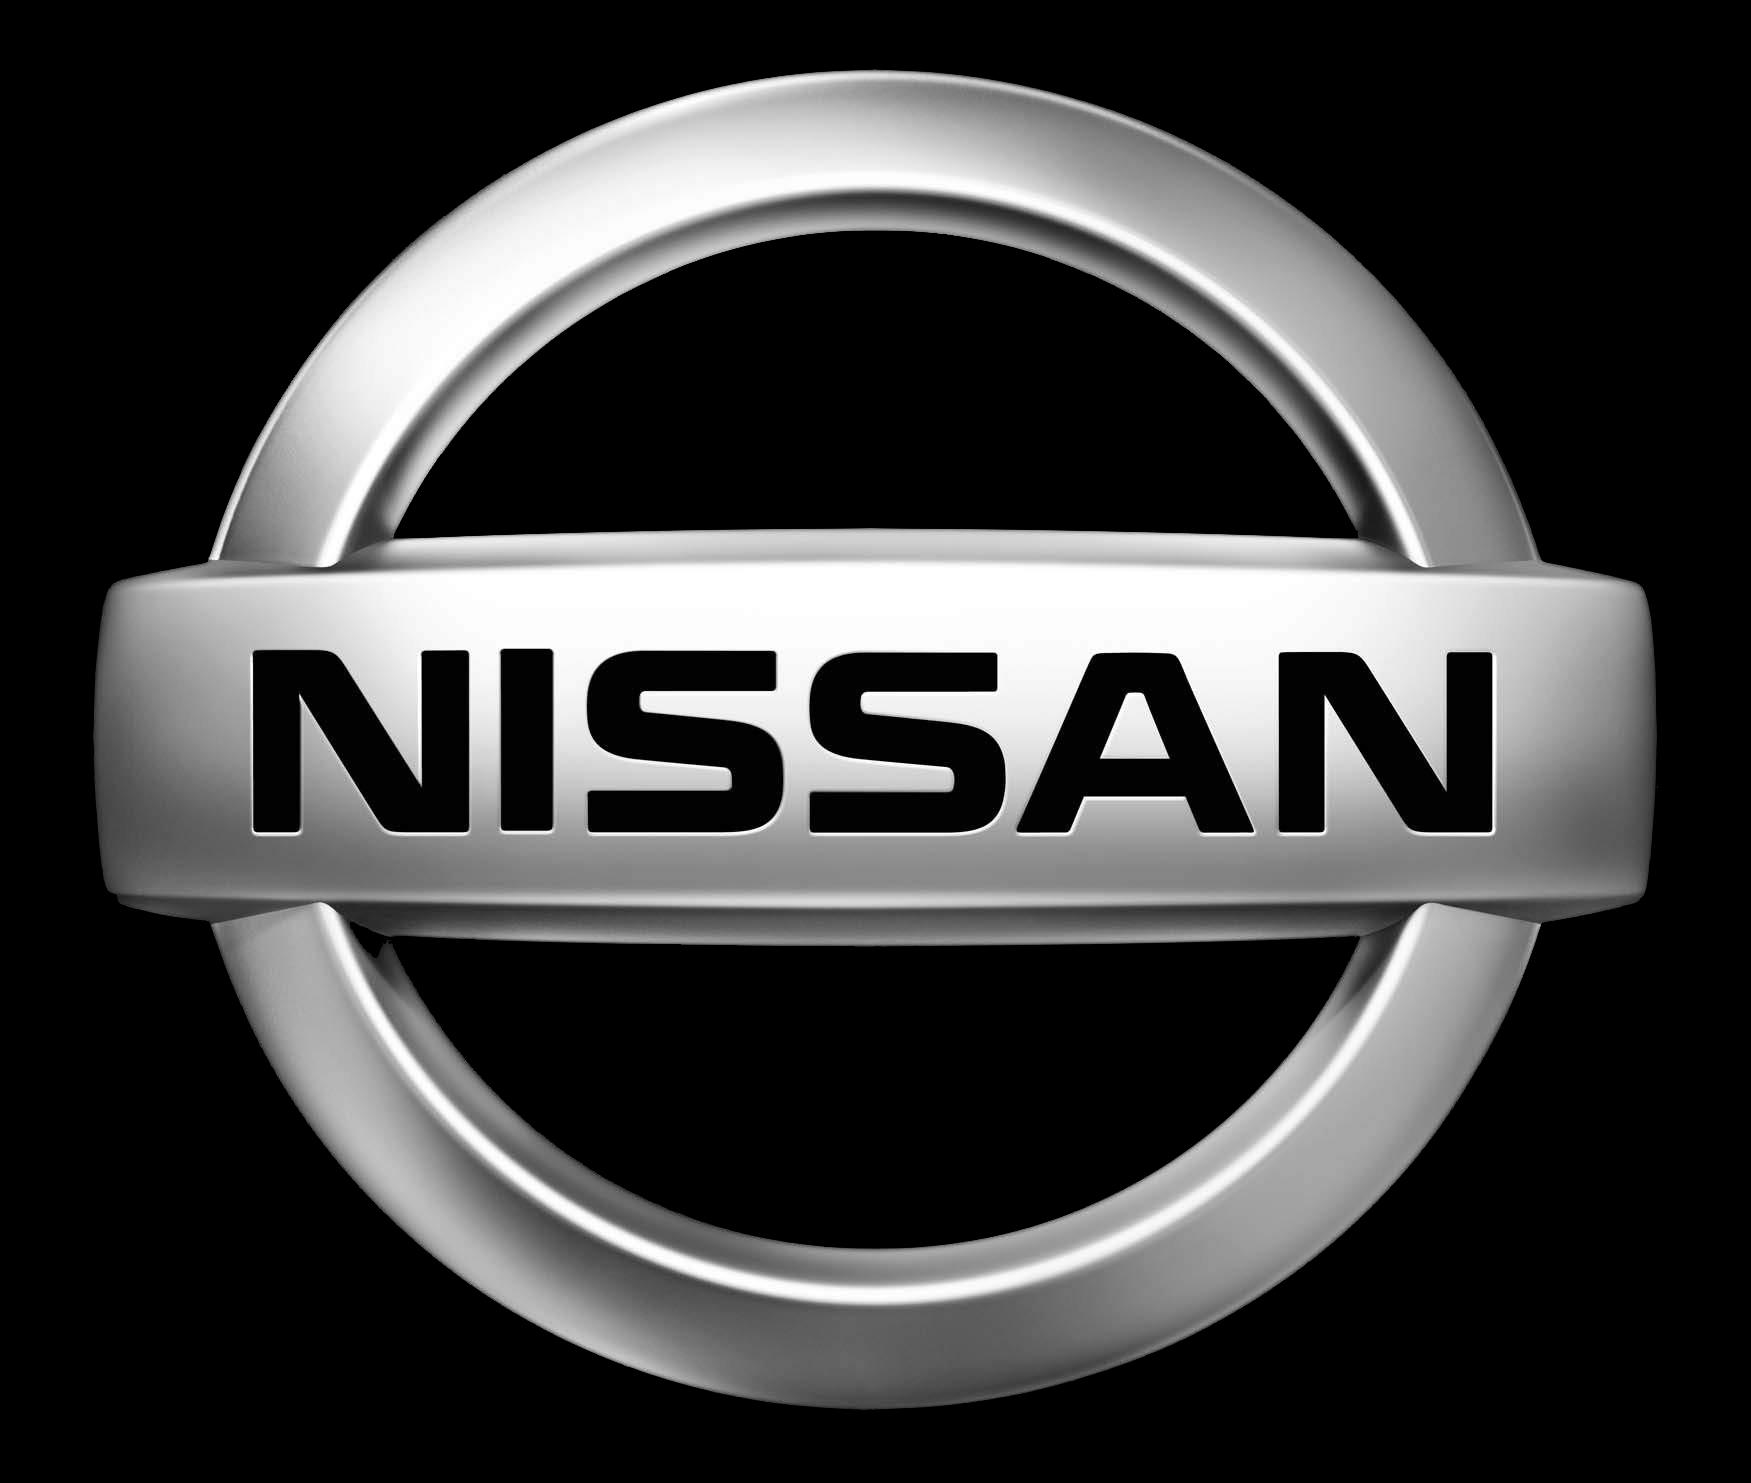 Replacement Auto Keys No Spare Nissan